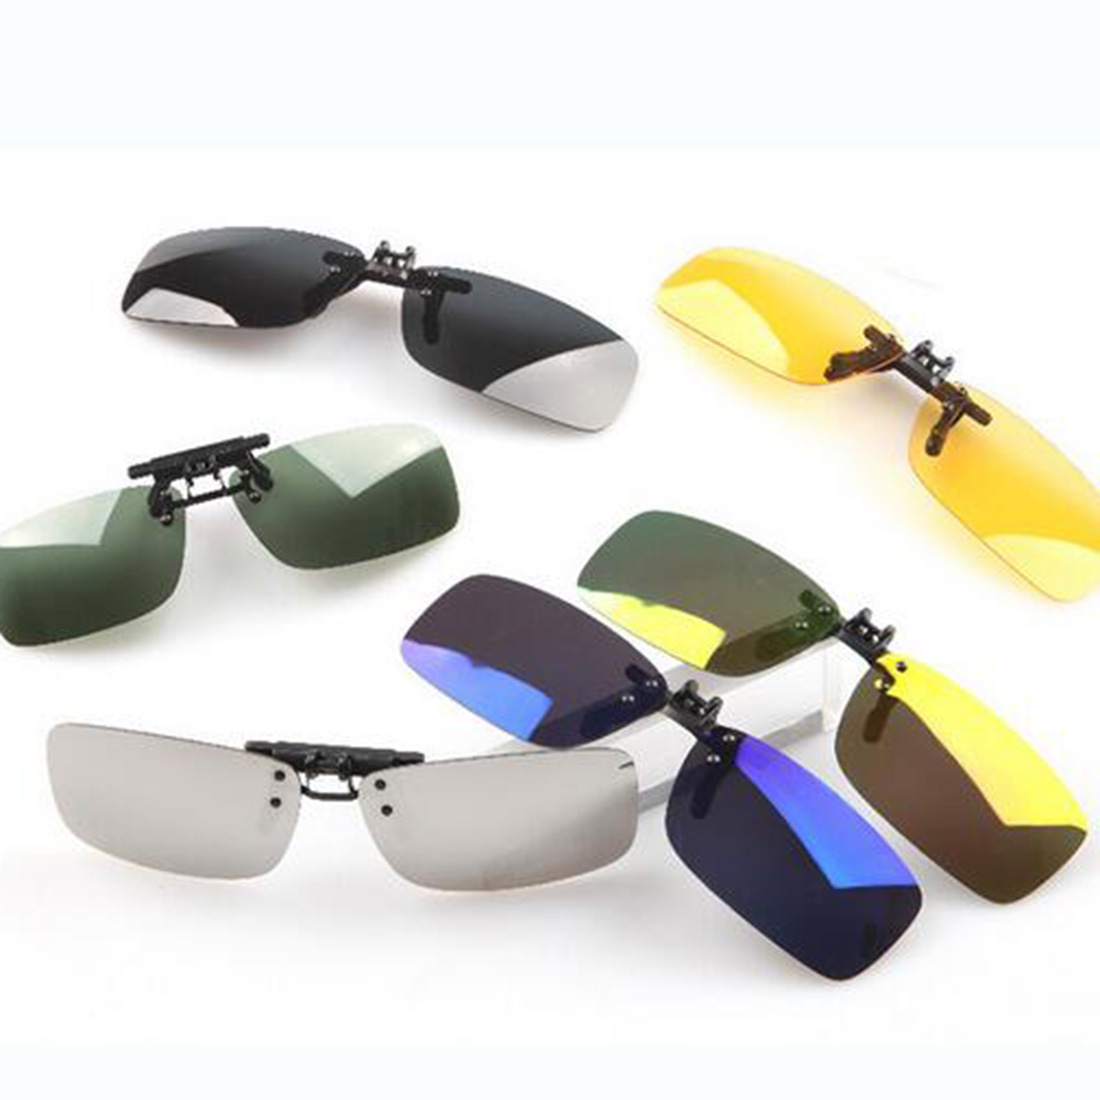 Unisex Polarized Clip On Sunglasses Driving Night Vision Lens Anti-UVA Anti-UVB Cycling Riding Sunglasses Clip For Near-Sighted стоимость